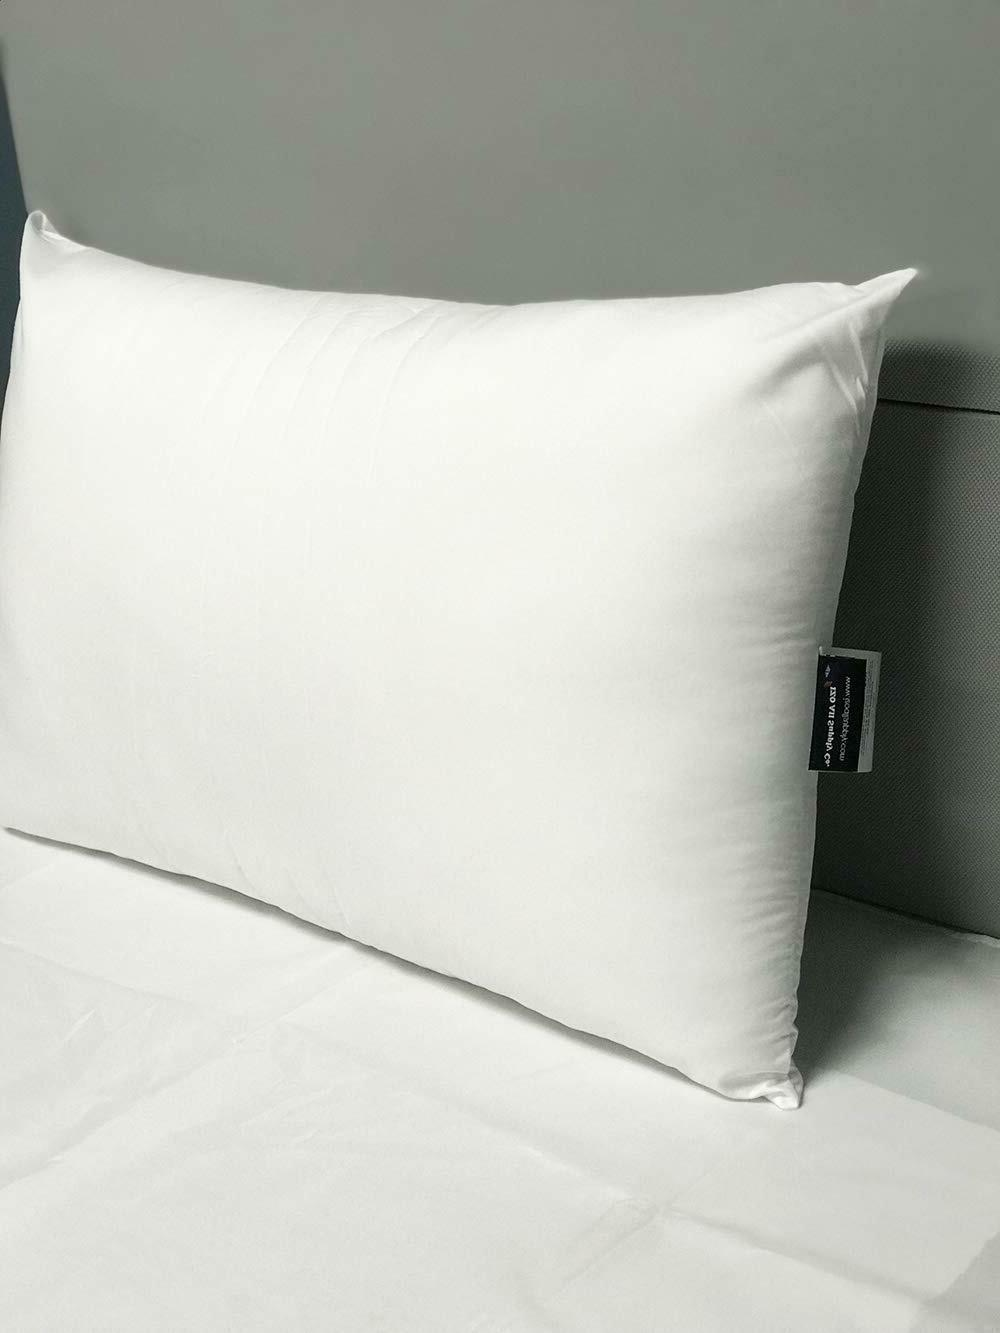 Huge Pillows Giant Large Bed 2pk